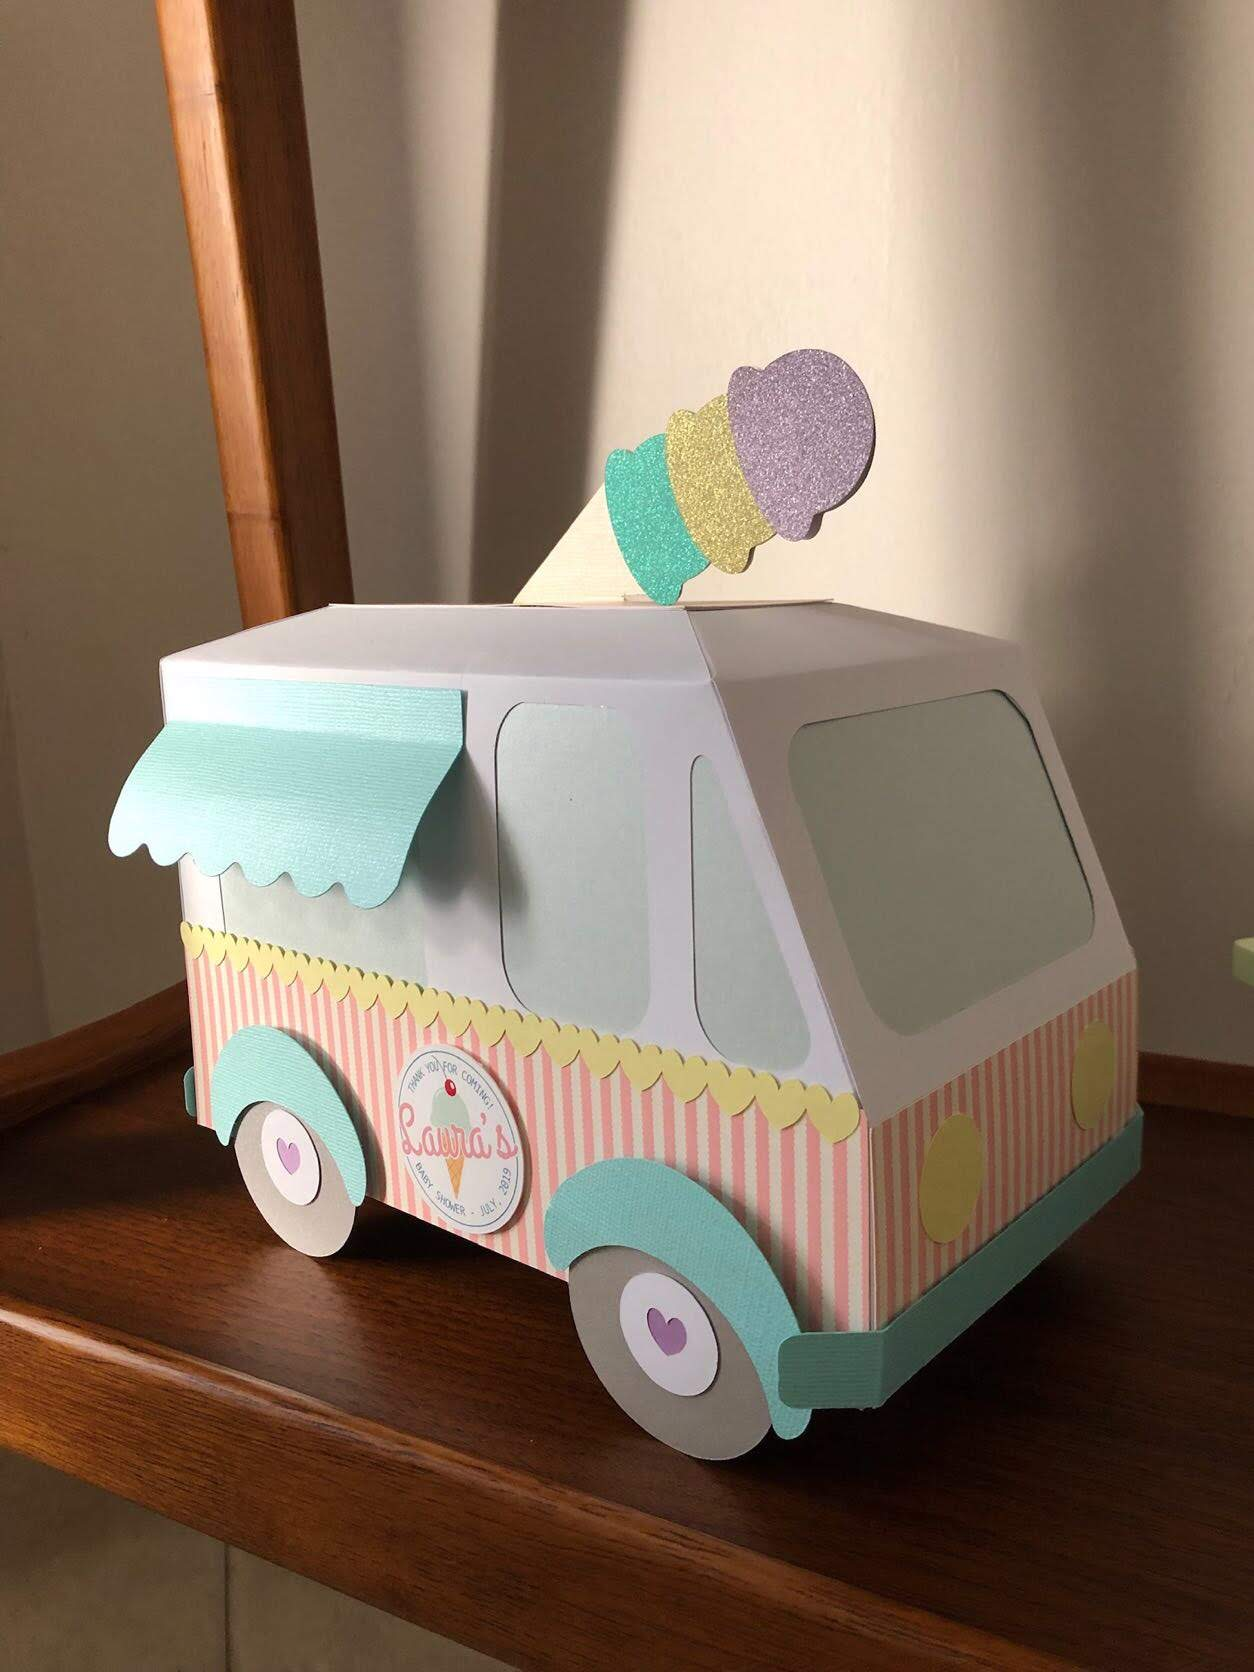 Ice Cream Truck made in paper